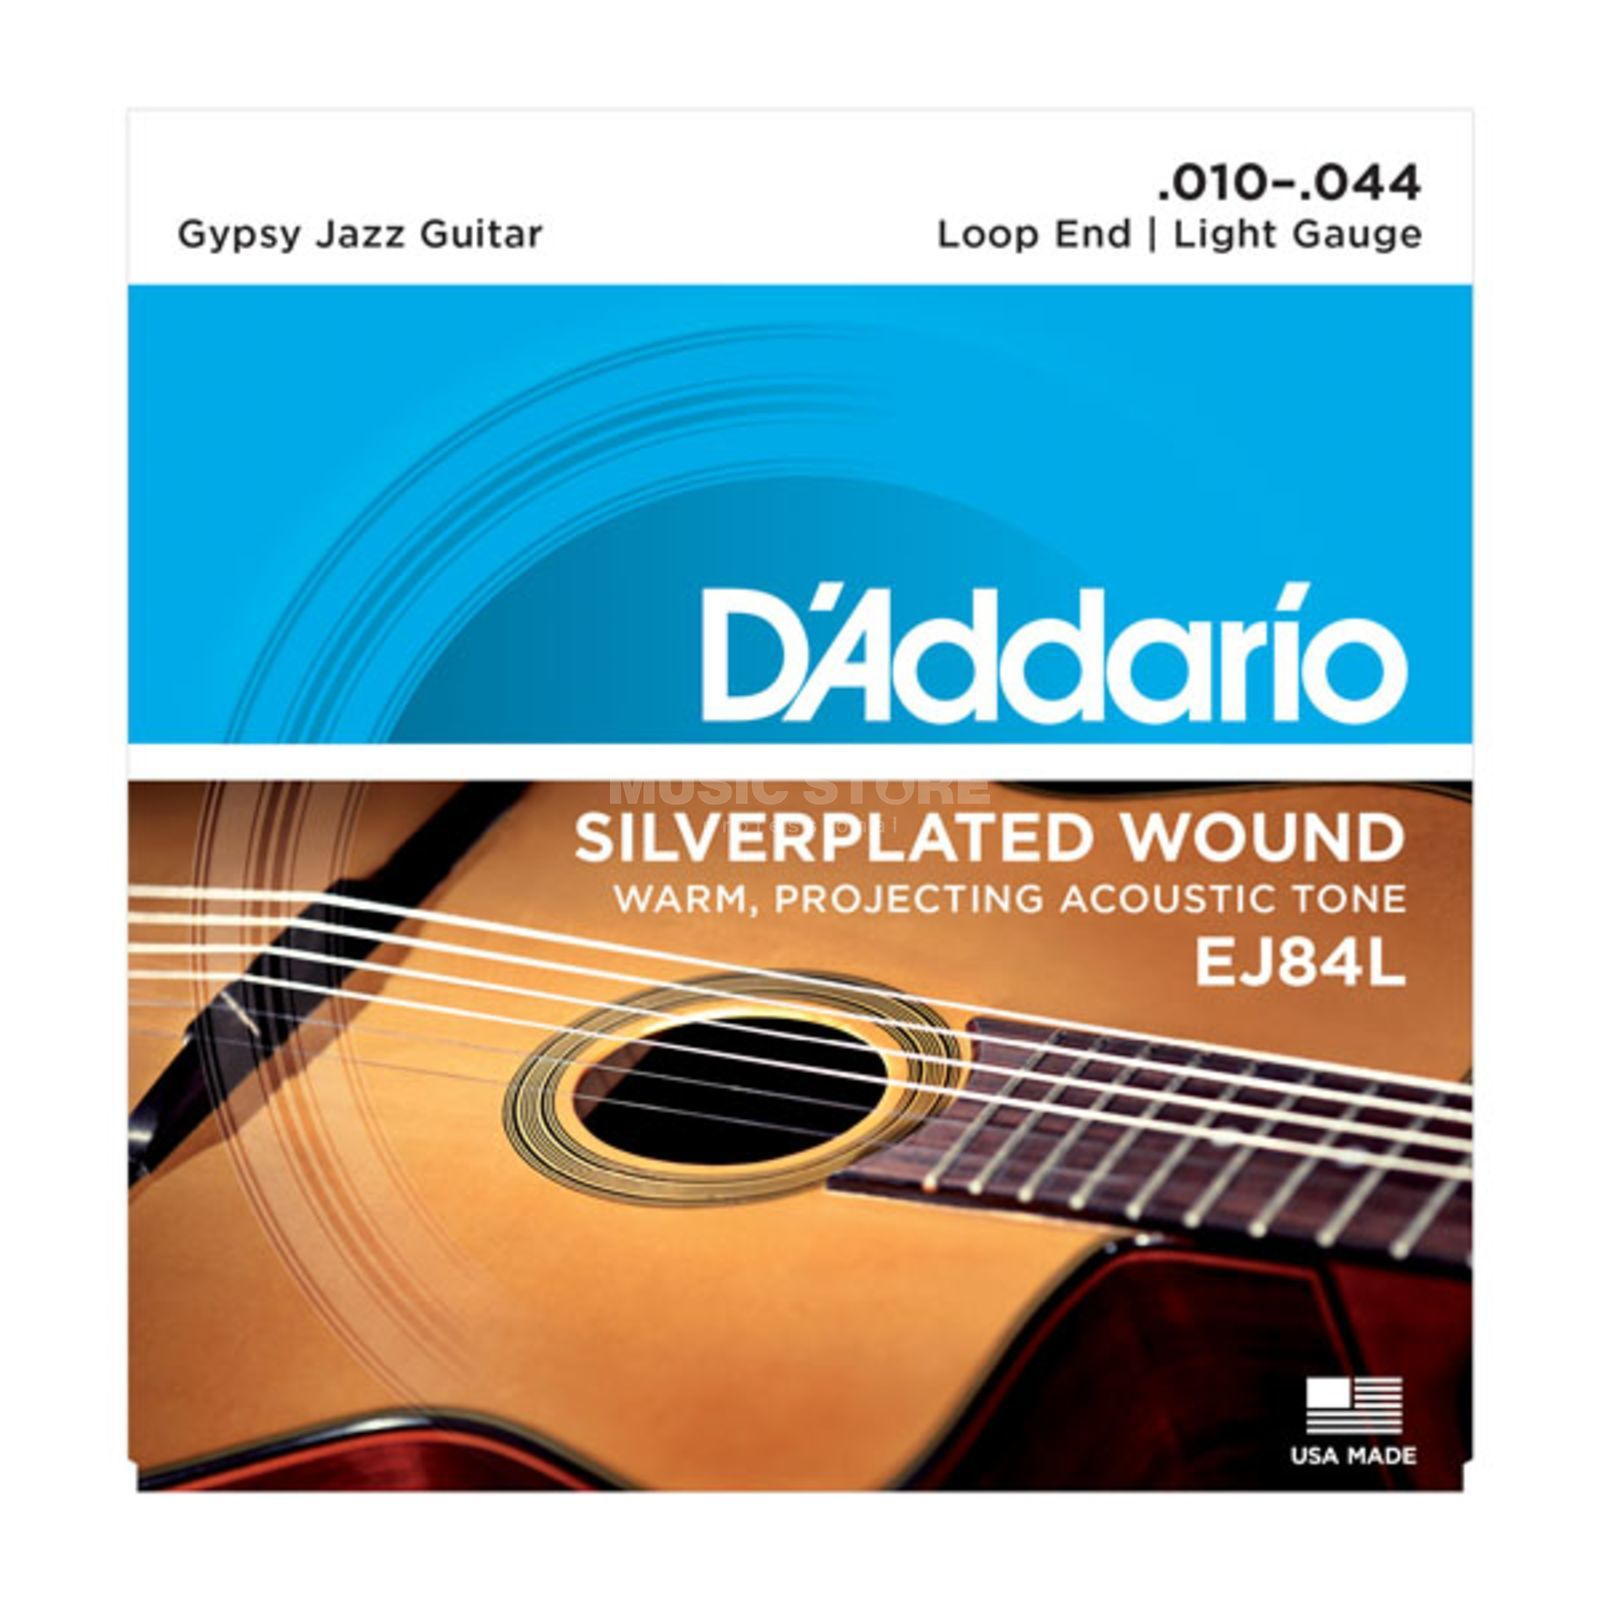 D'Addario Gypsy Jazz Saiten EJ84L 10-44 Loop End, Silverplated Wound Produktbild